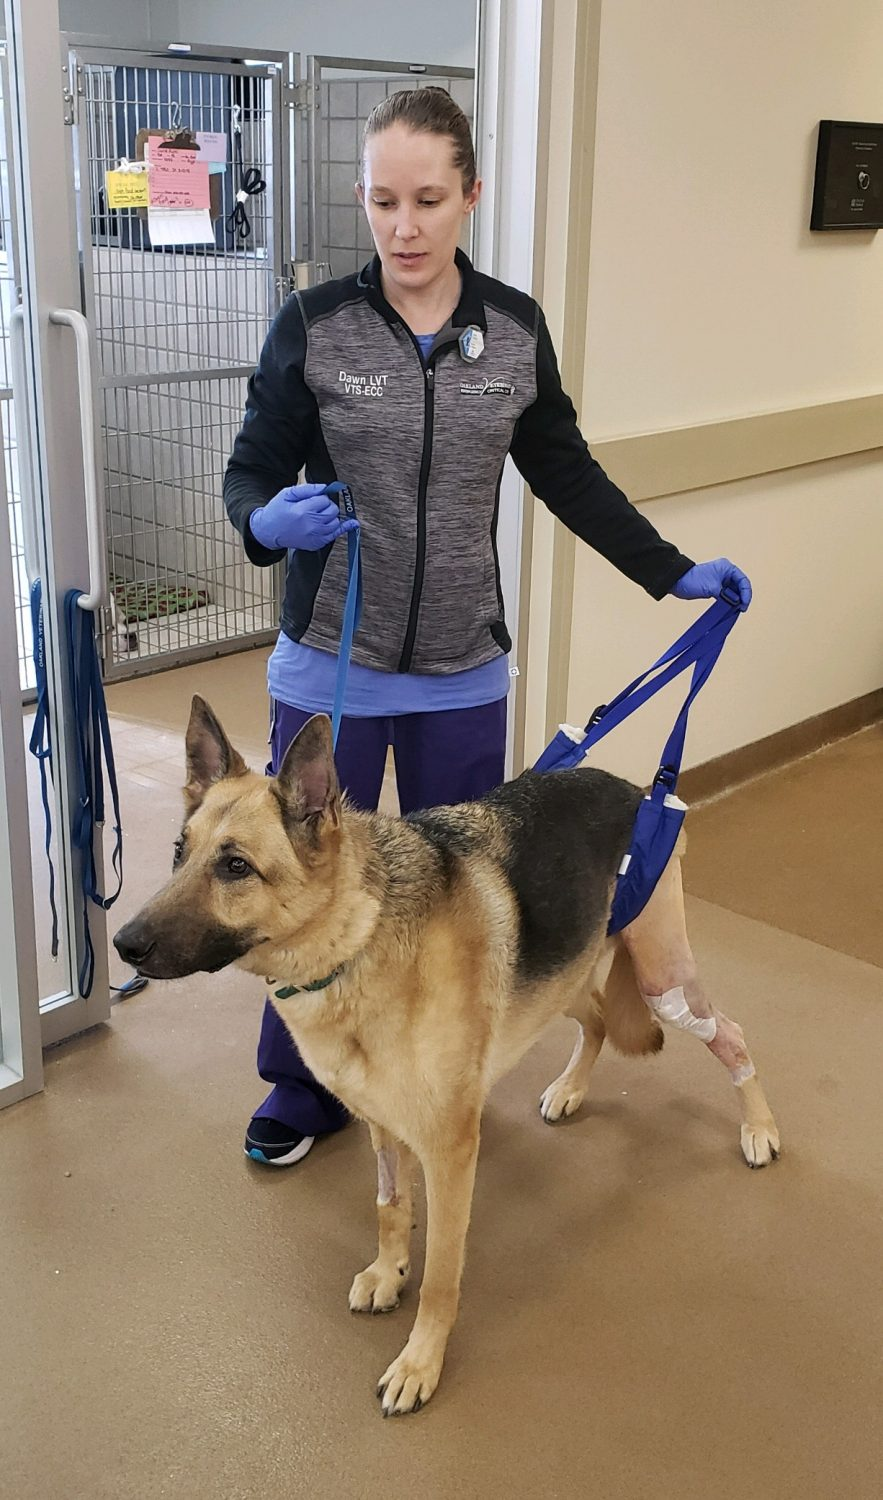 Large dog using harness to help walk after TPLO surgery.